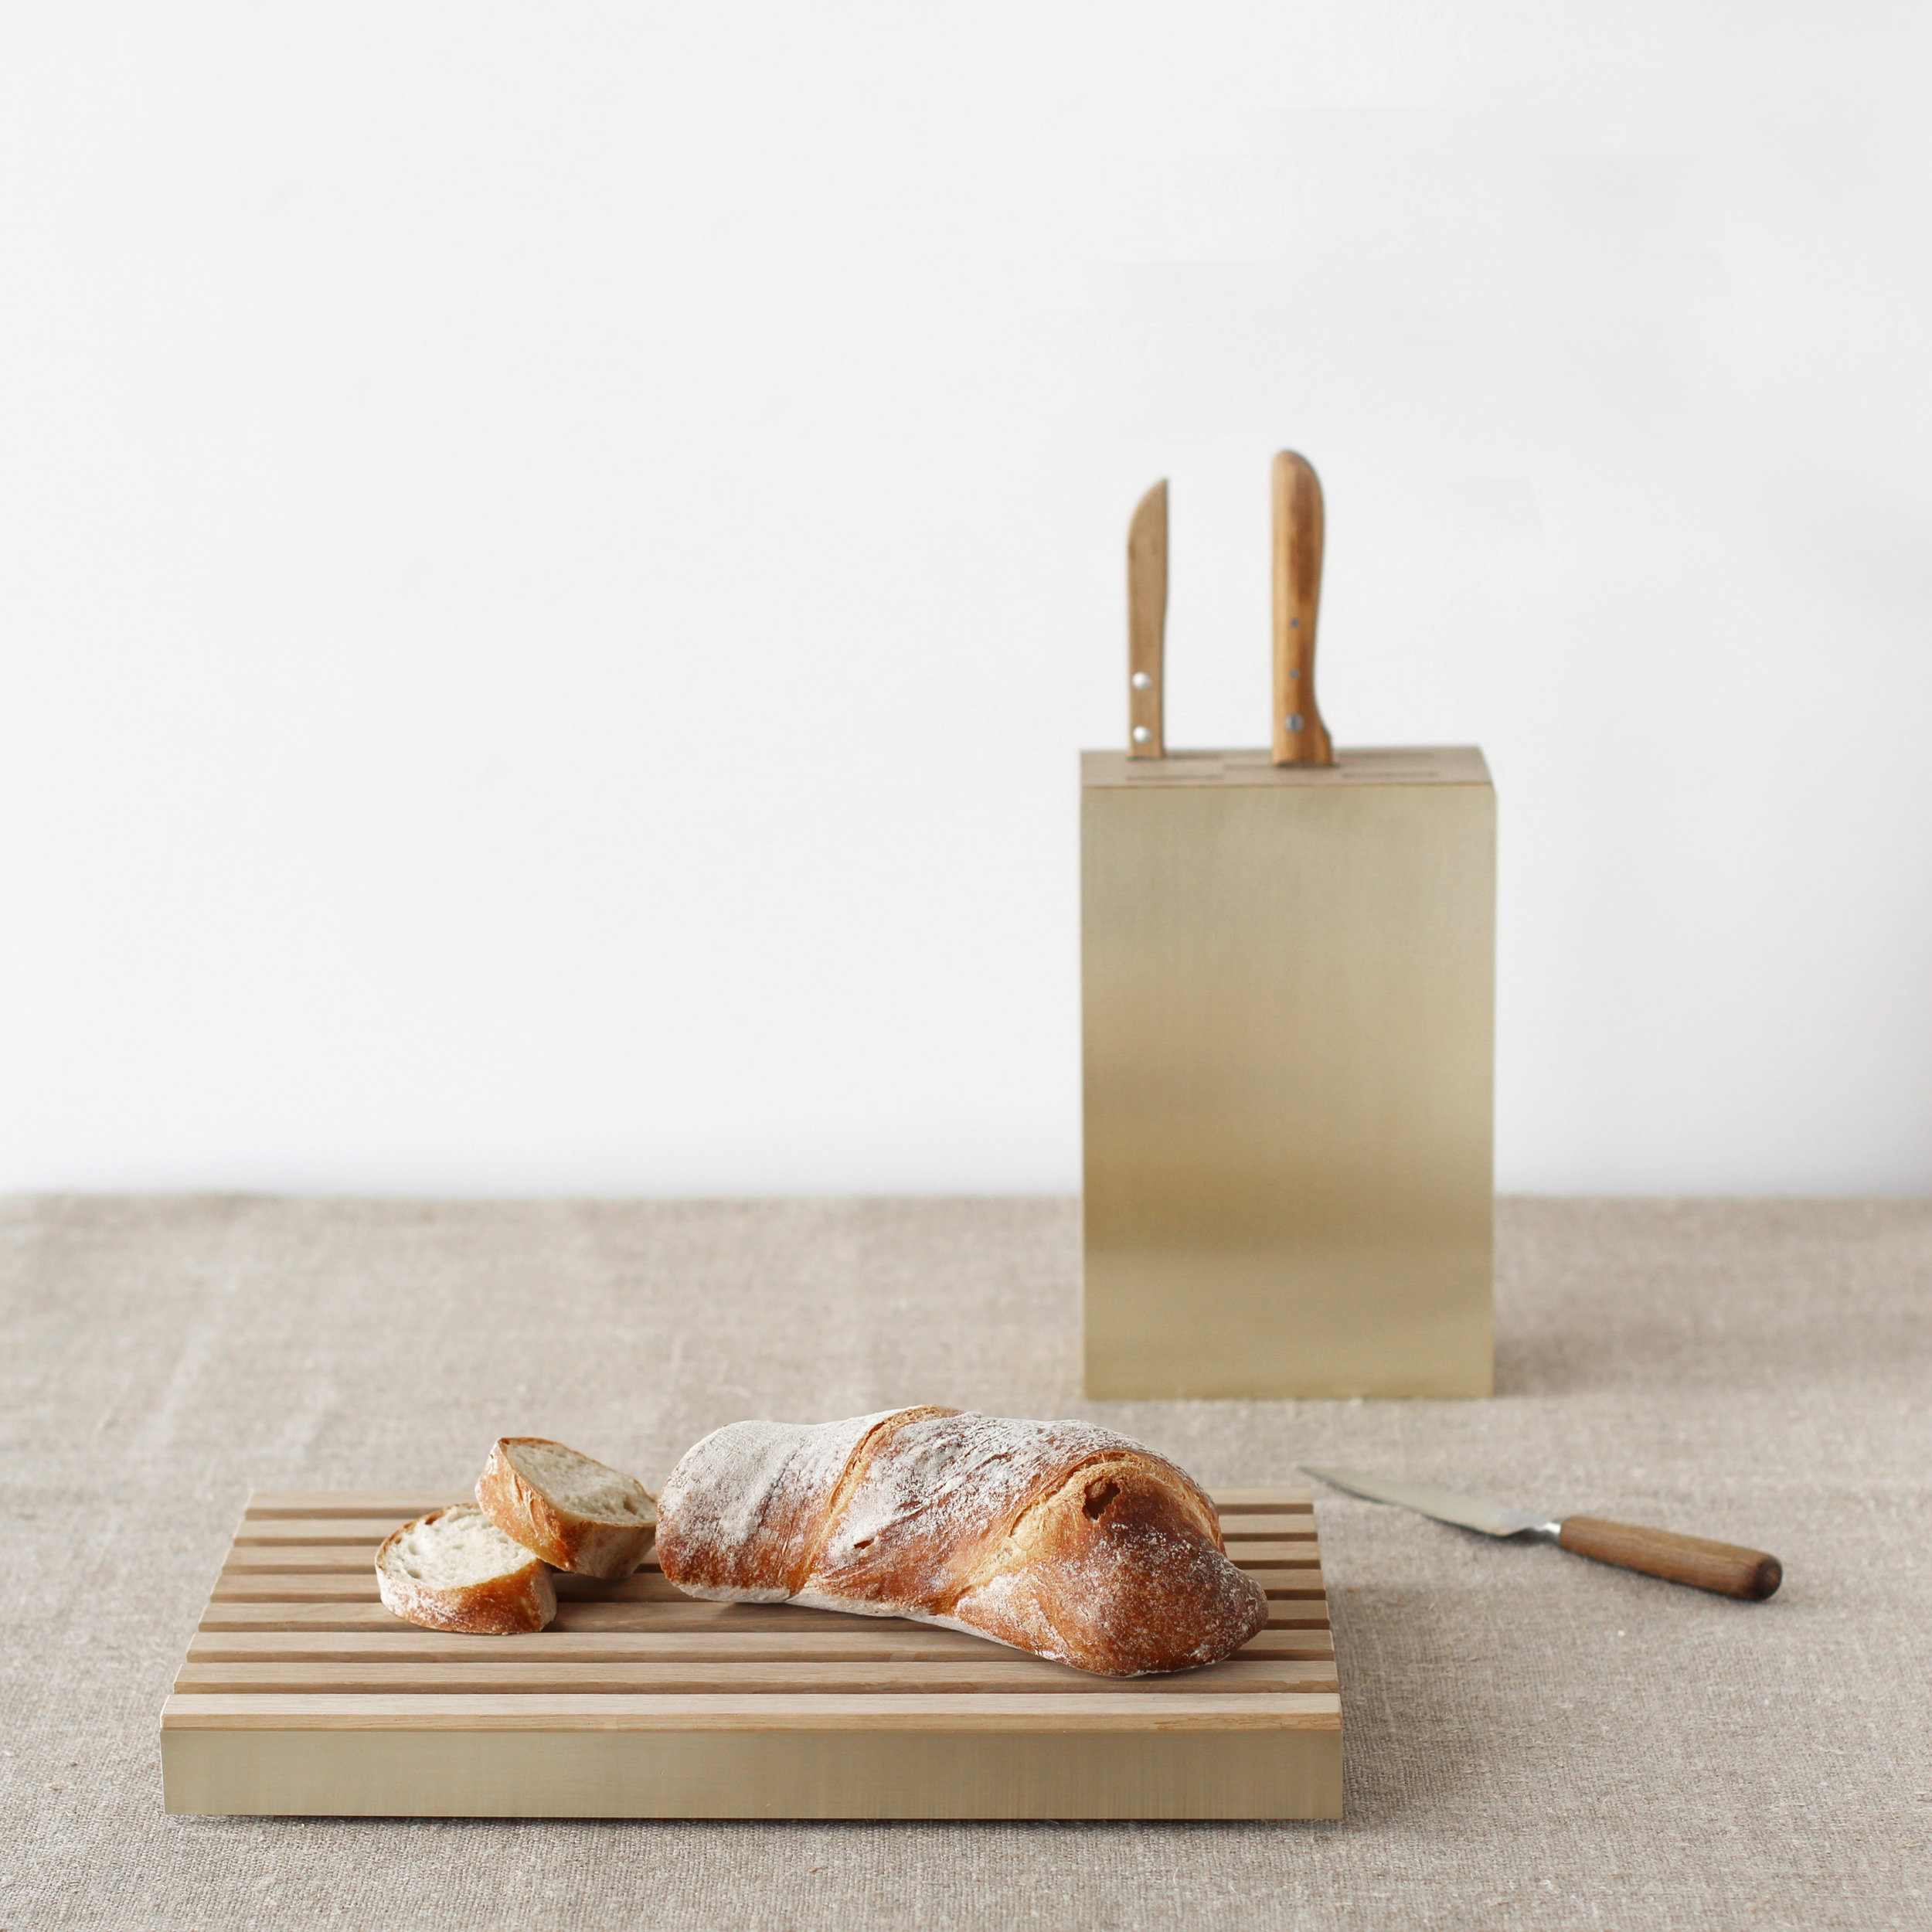 ICO_Everyday Objects_Cutting Board + Knife Block_Marc Merckx Interiors